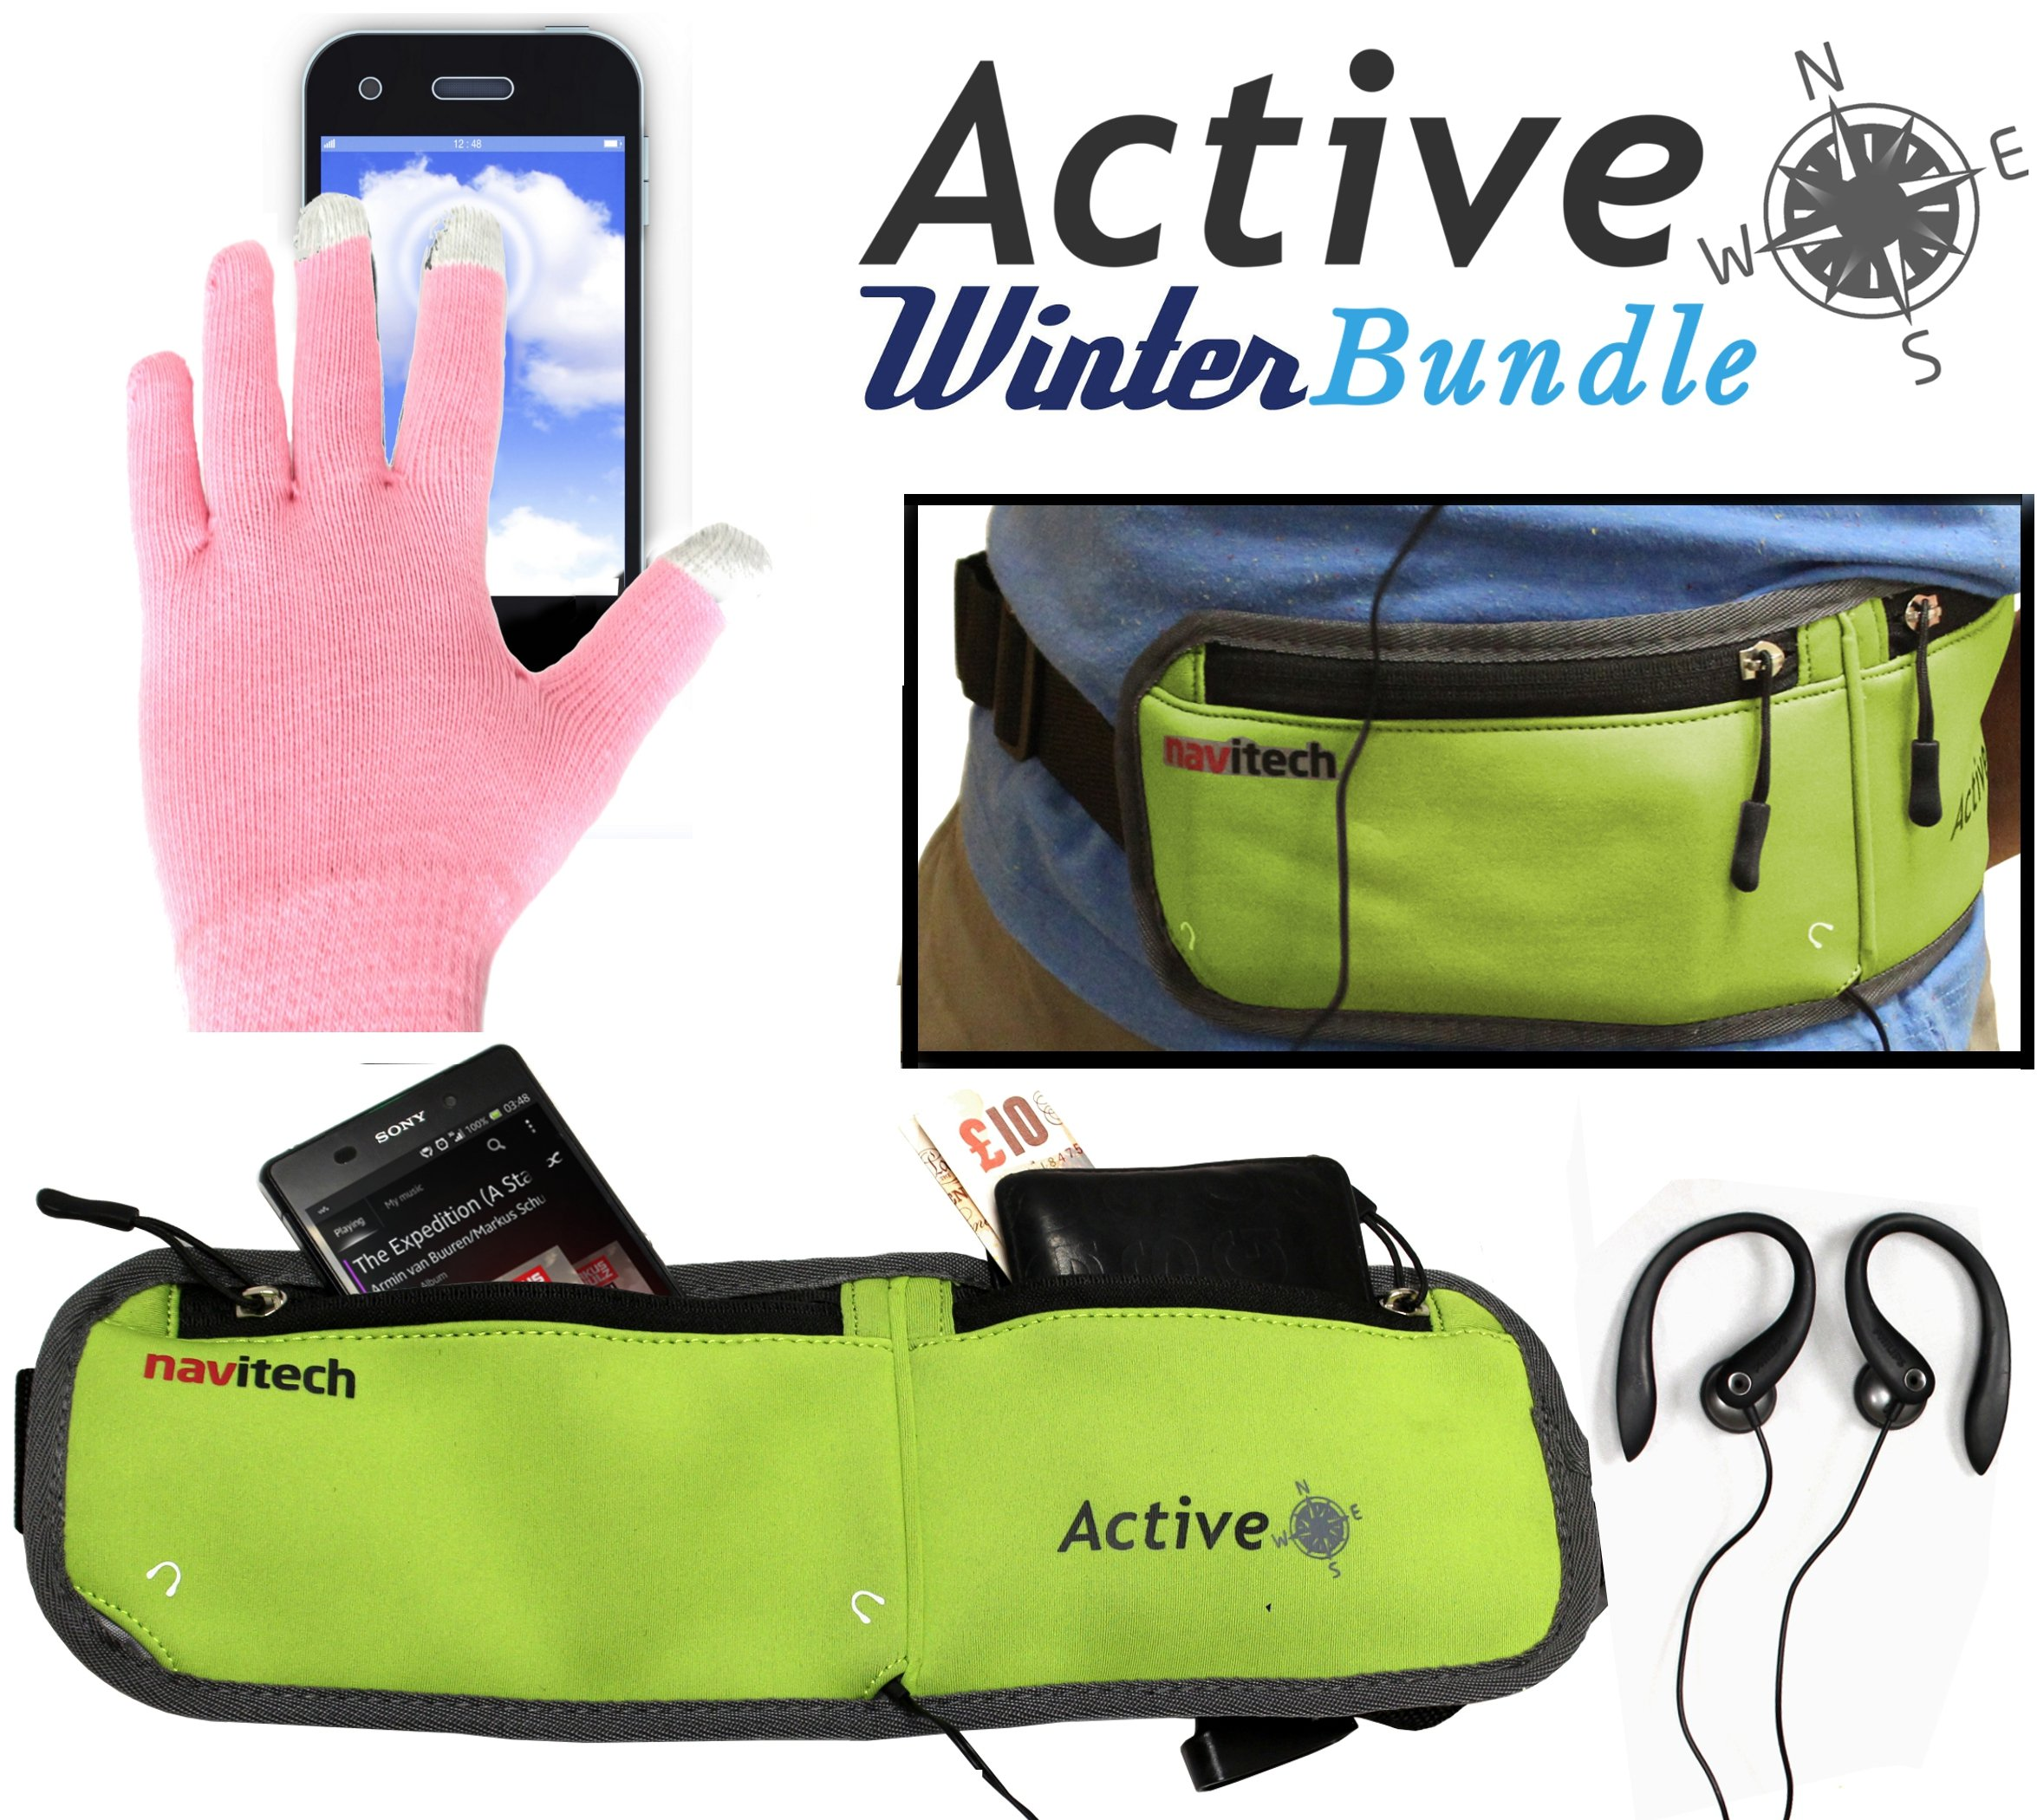 Navitech Active Bundle Including Green Running / Jogging Sports Waistband & Pink Touchscreen Gloves For The iPhone 5 / 5c / 5s